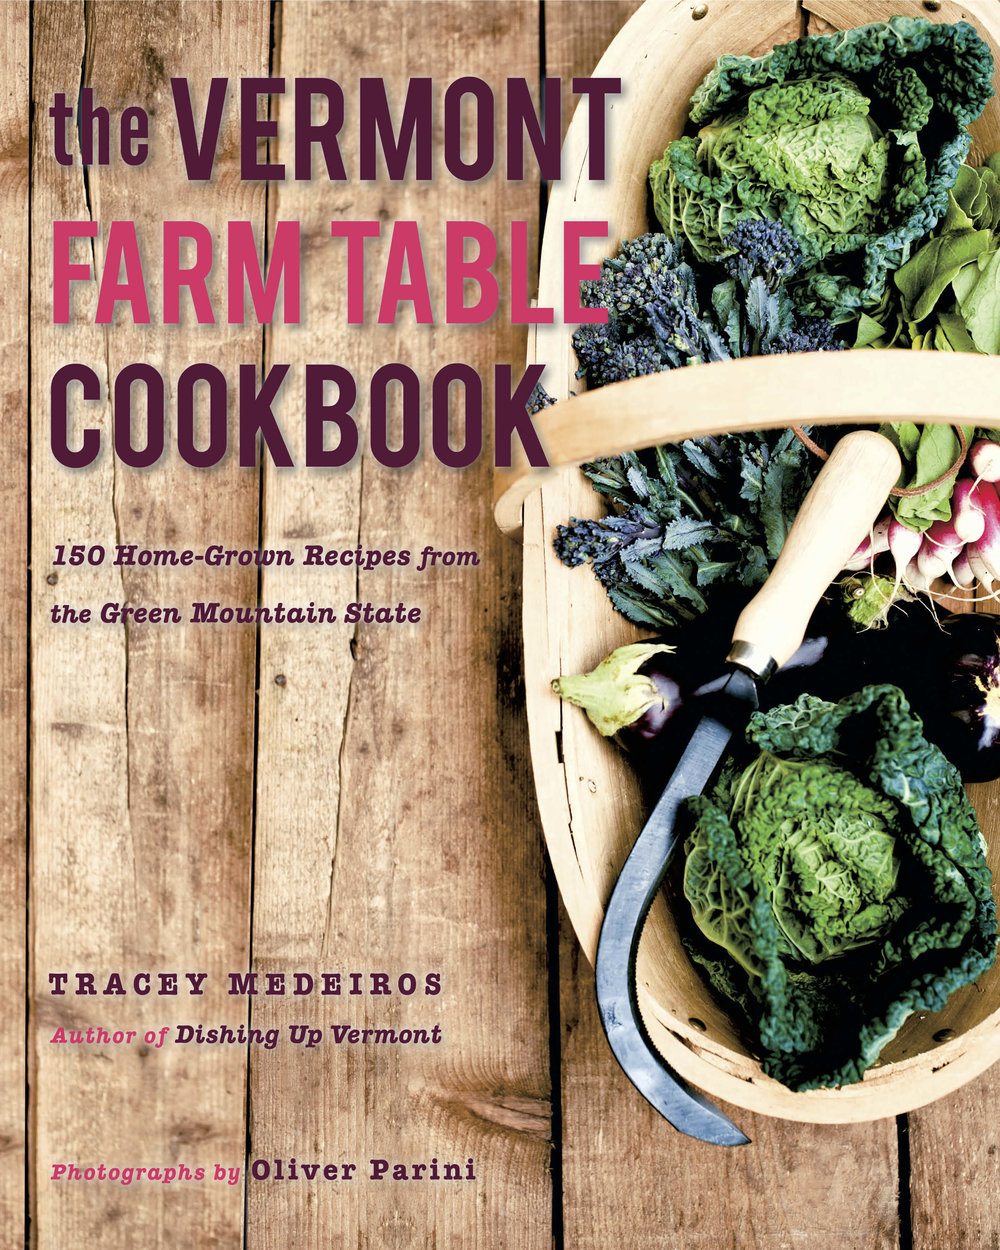 "The Vermont Farm Table Cookbook Small, independent farms are the lifeblood of Vermont's agriculture, from the sweetcorn grower to the dairy goat farmer to the cheese maker whose locally sourced goat milk chevre becomes the heart of a new dish by a chef in Montpelier. While this farm-to-table cycle may be a phenomenon just hitting its stride in the United States, it has long been away of life in Vermont, part of the ethos that Vermonters use to define themselves. As such, Vermont exemplifies a standard of small-scale, community-minded, unadulterated agriculture that has become a national model. When Tracey Medeiros wrote Dishing Up Vermont in 2008, she wanted to showcase the chefs and restaurateurs who were dazzling taste buds with their fresh, whole-food creations. With The Vermont Farm Table Cookbook, Medeiros has traversed the Green Mountain State once again, in search of not only those celebrated chefs but the hard-working farmers who provide them with their fresh and wholesome ingredients as well. Collecting their stories and some 125 of their delicious, rustic-yet-refined, Vermont inspired recipes, Medeiros presents an irresistible gastronomic portrait of this singular state. Classics like Vermont Cheddar Soup and exciting innovations like Ramp Dumplings or Raisin Hell Pie will send you racing to your local farmers' market in search of the ingredients. And with dishes that shout ""only in Vermont,""like Wood-Fired Blueberry Pizza or Beer-Battered Fiddleheads, no matter where you are you'll want to transform your tried-and-true menus into fresh and flavorful Vermont farm table suppers. The Countryman Press, A division of W.W. Norton & Co., Inc. 500 Fifth Avenue New York, NY 10110 Tel:  (212) 790-9410   Fax:  (802) 457-1678 Link to Amazon.com"